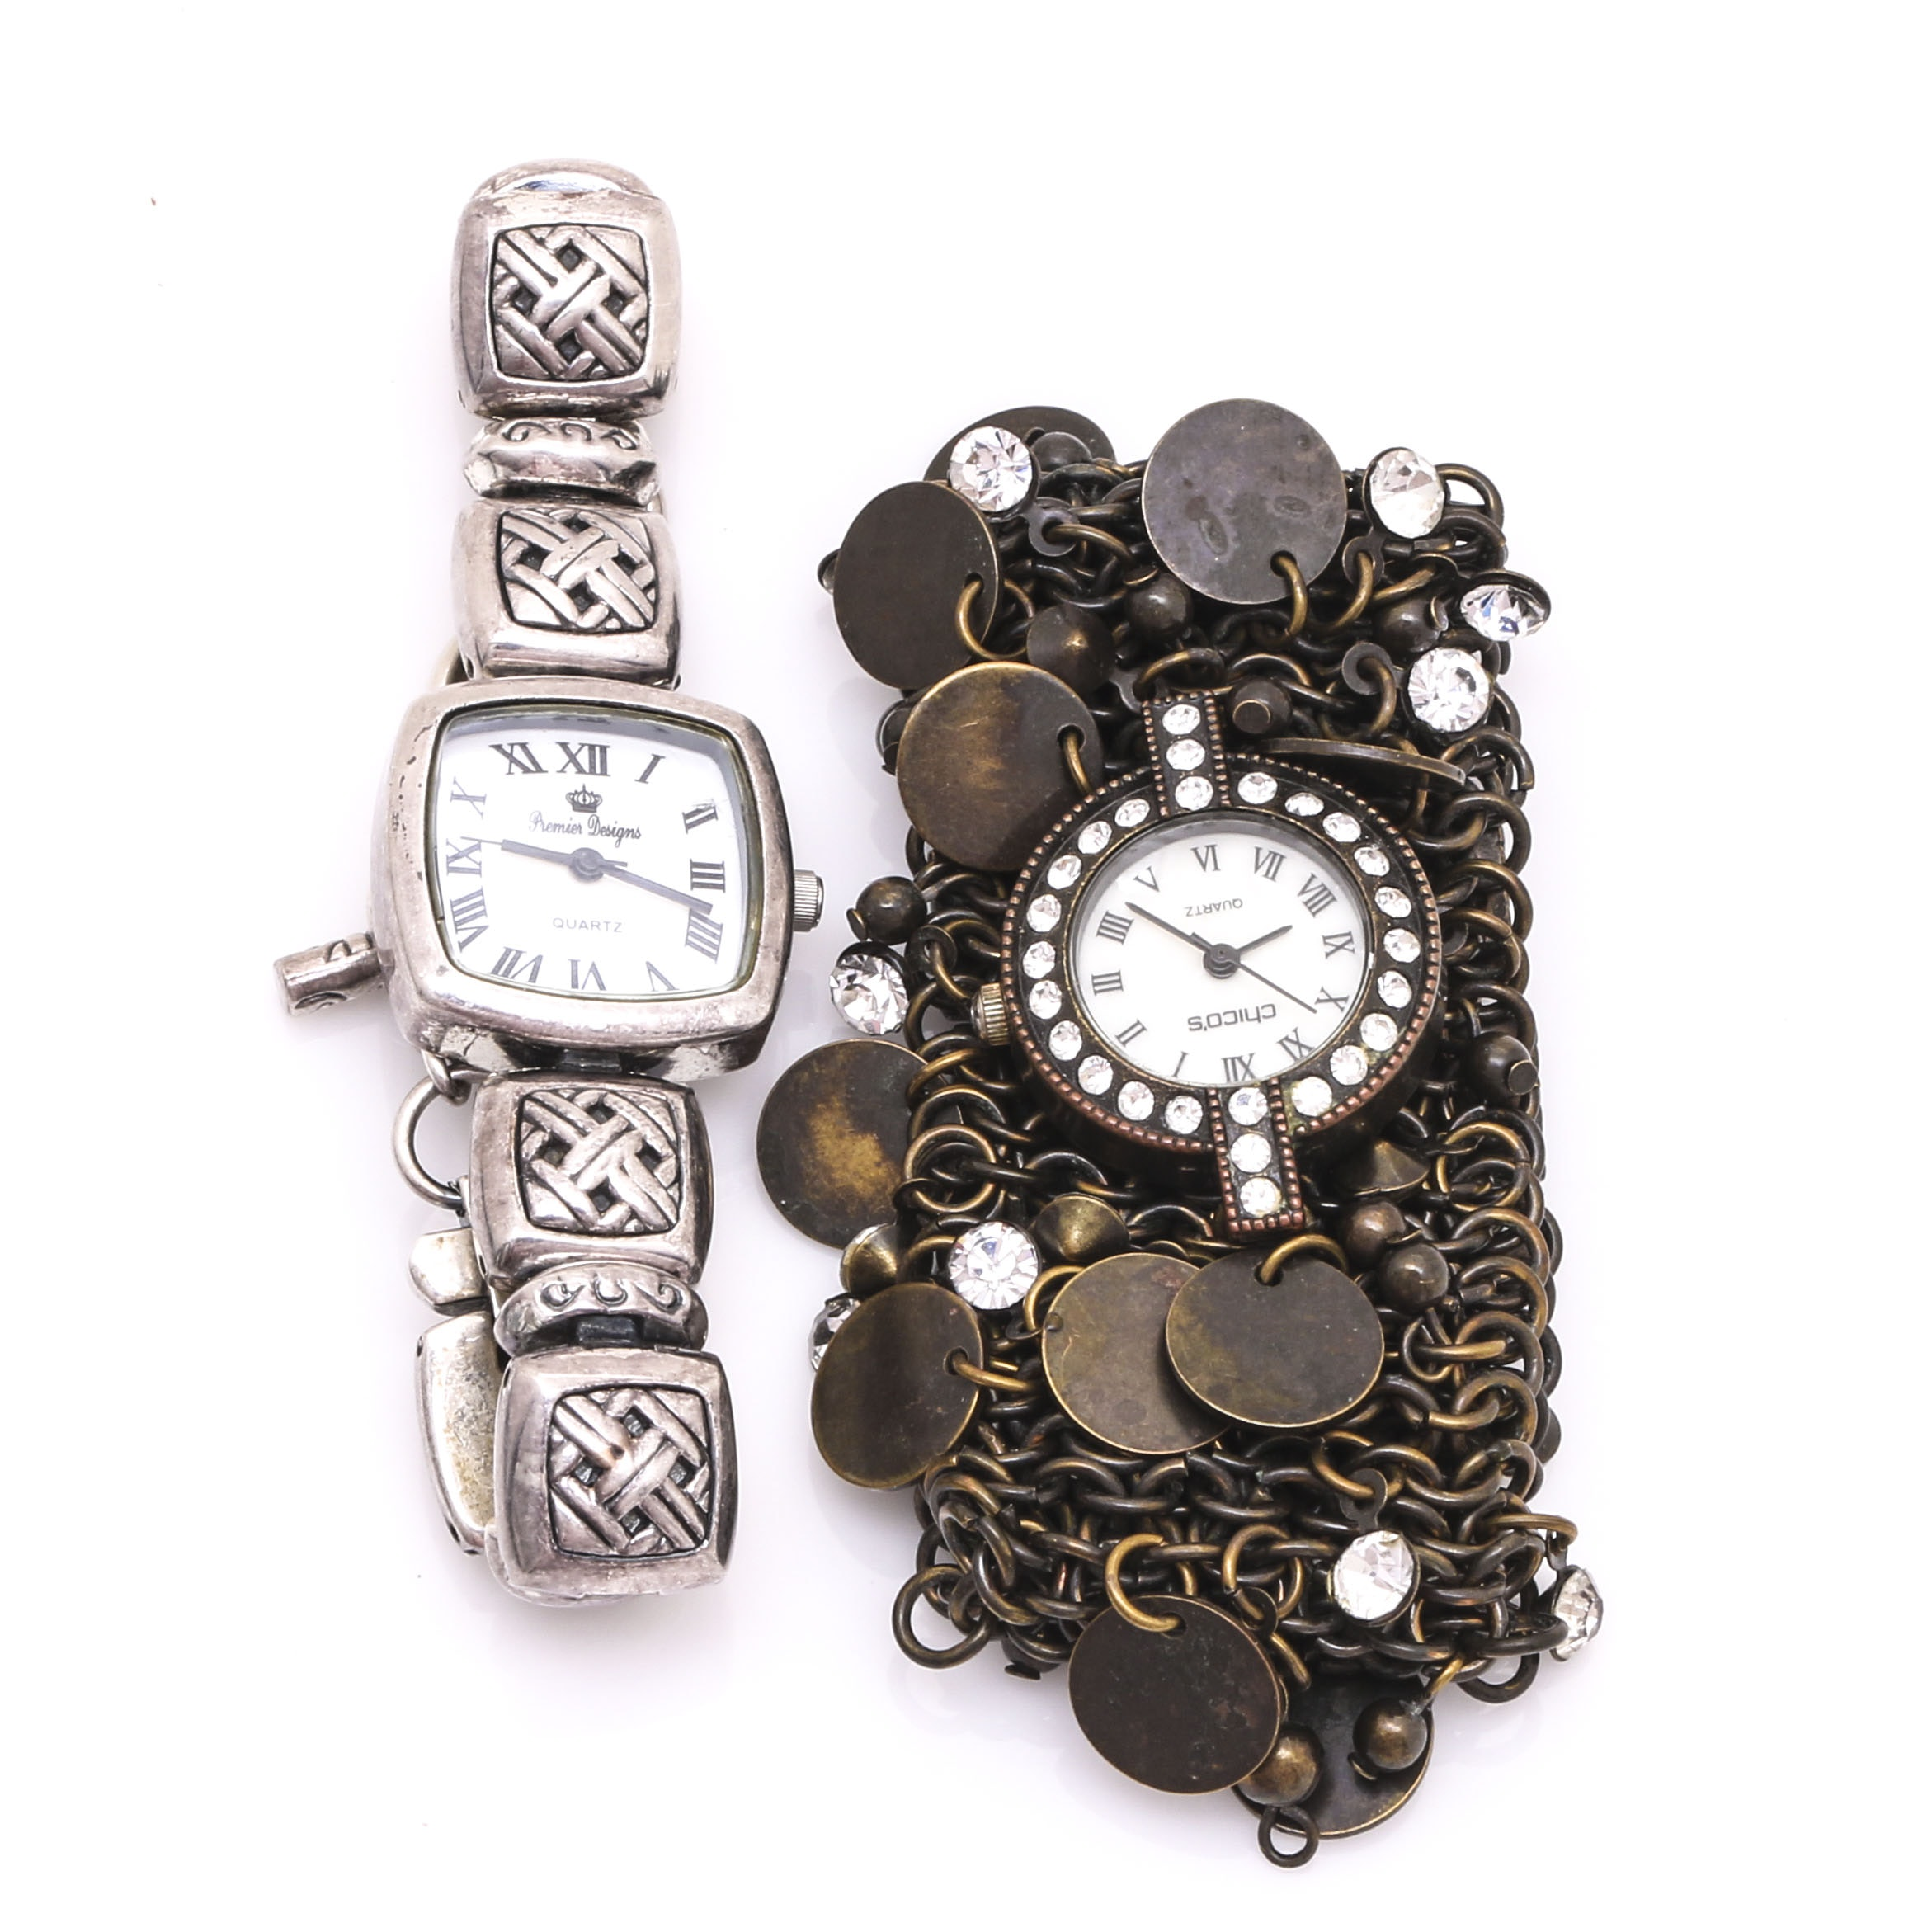 Premier Designs Geometric and Chico's Charm Wristwatches